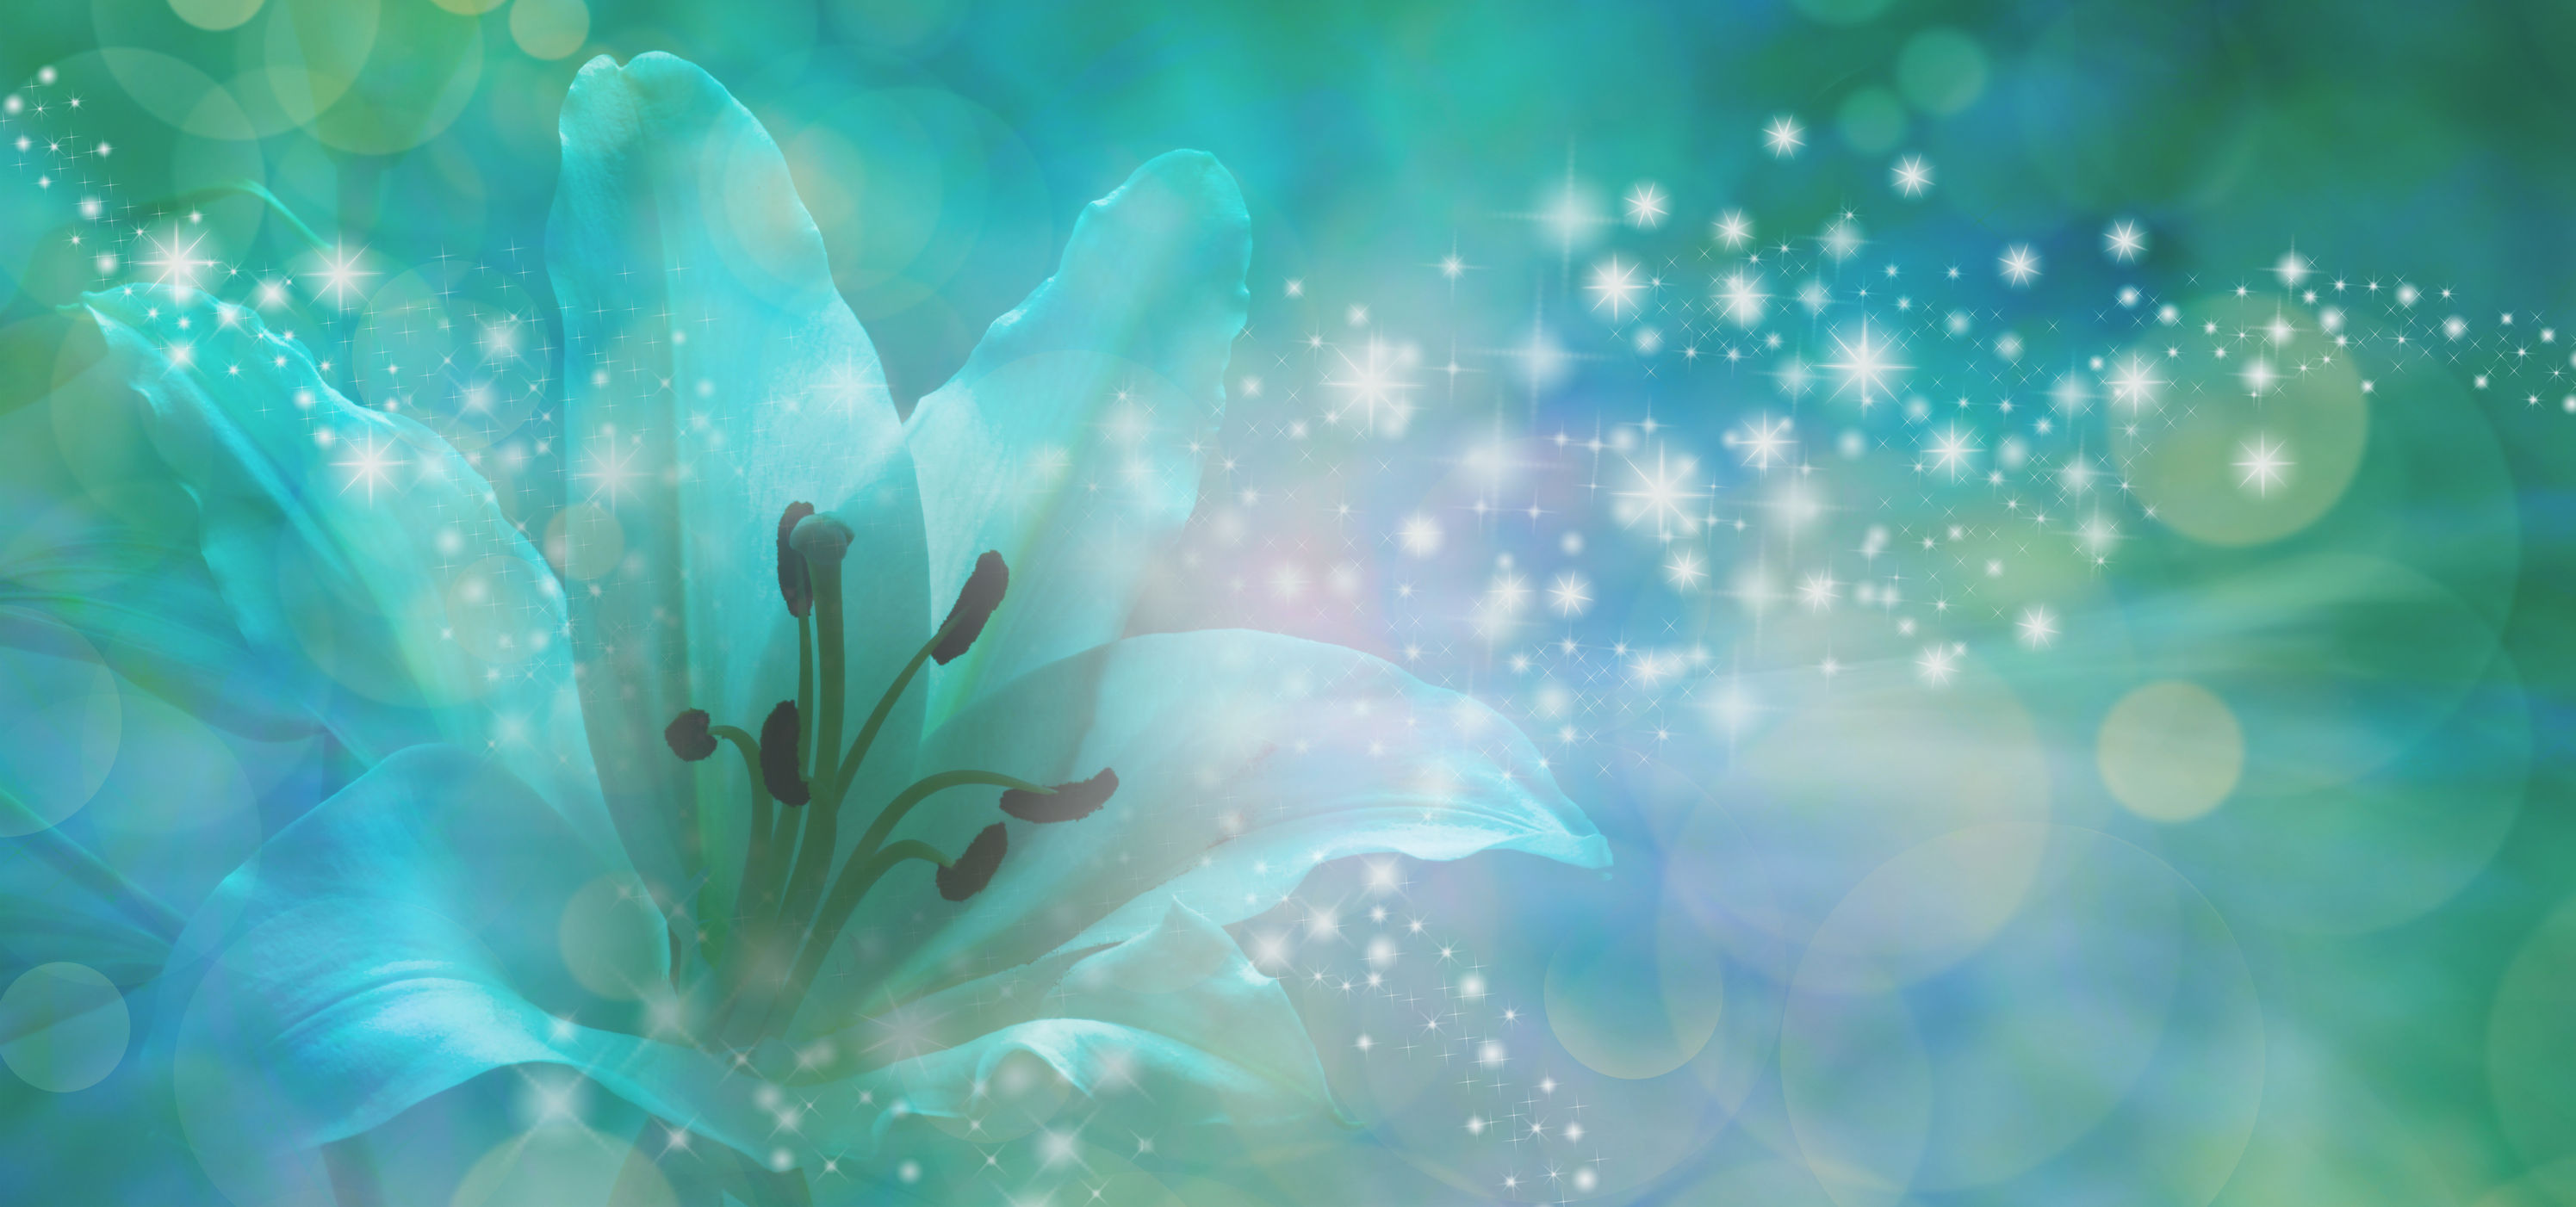 58959253 - sparkling lilly banner - beautiful  lily head with glitter and sparkles radiating outwards from the center on a jade green and blue bokeh background with copy space